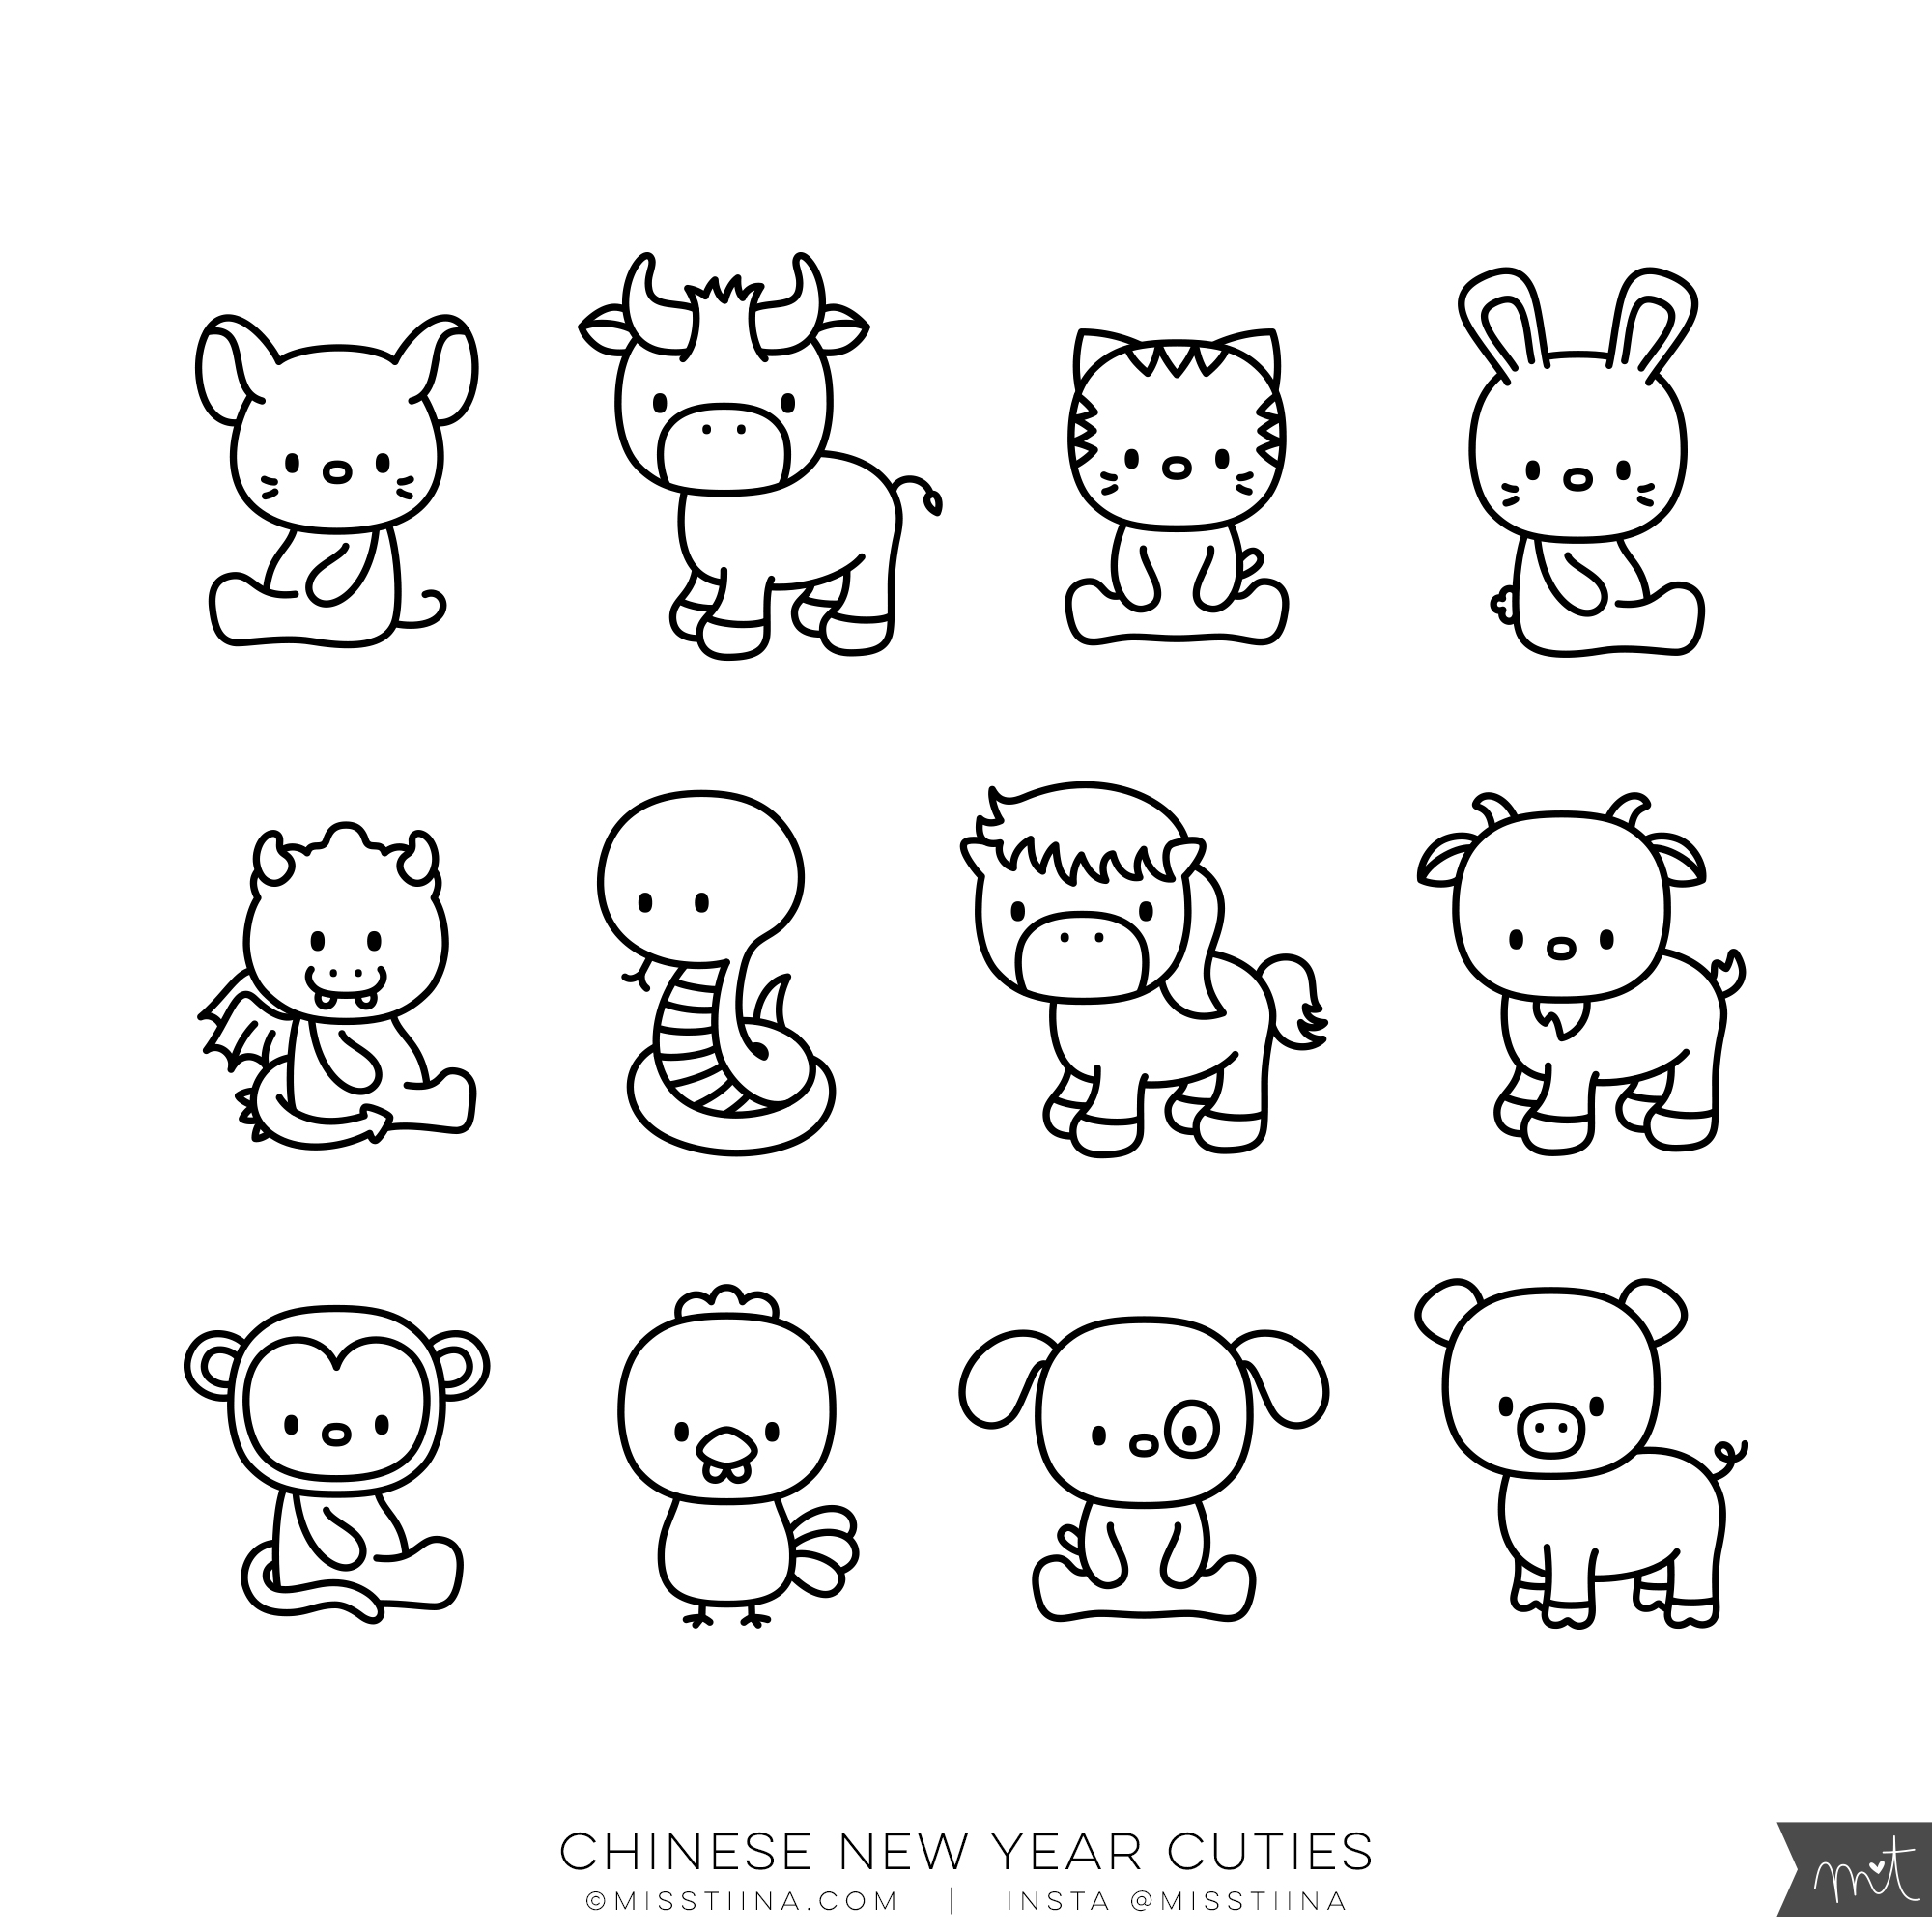 Chinese New Year Cuties (CU)